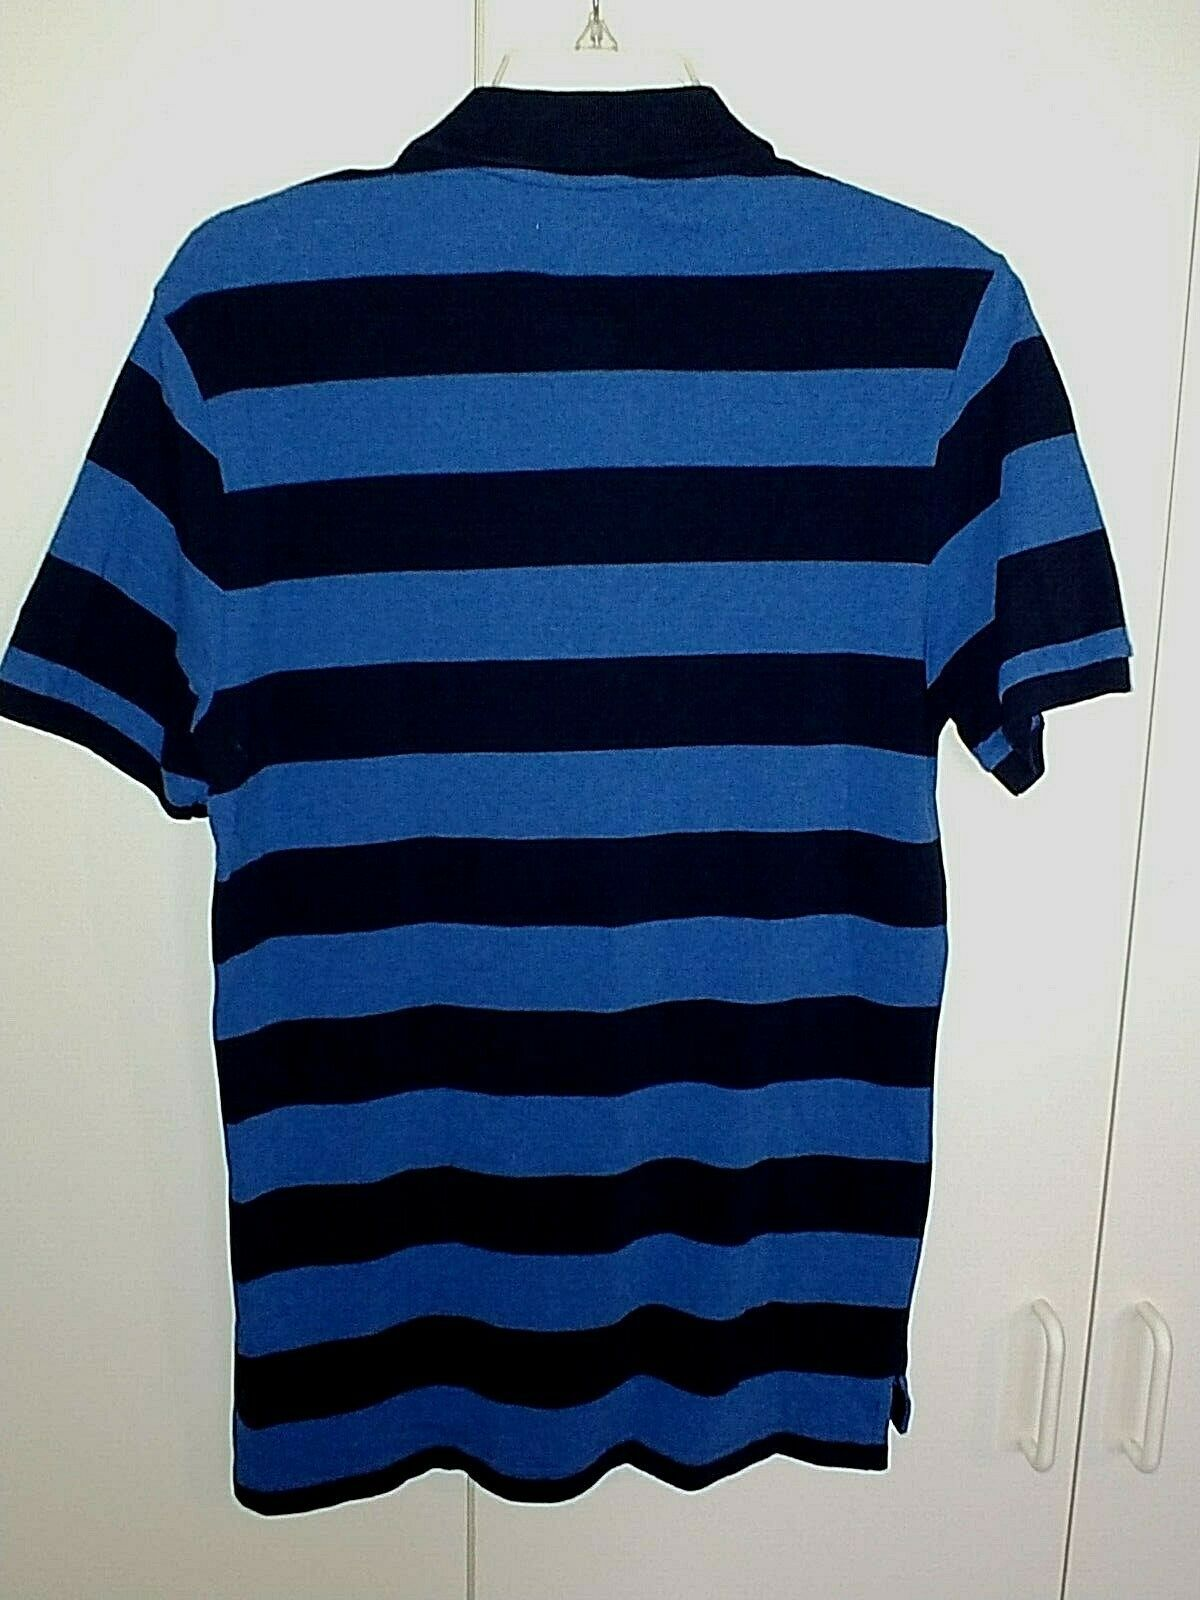 GAP MENS SS BLUE STRIPED 100% COTTON SLIM FIT POLO SHIRT-M-NWD-NECK NAME BLOCKED image 2